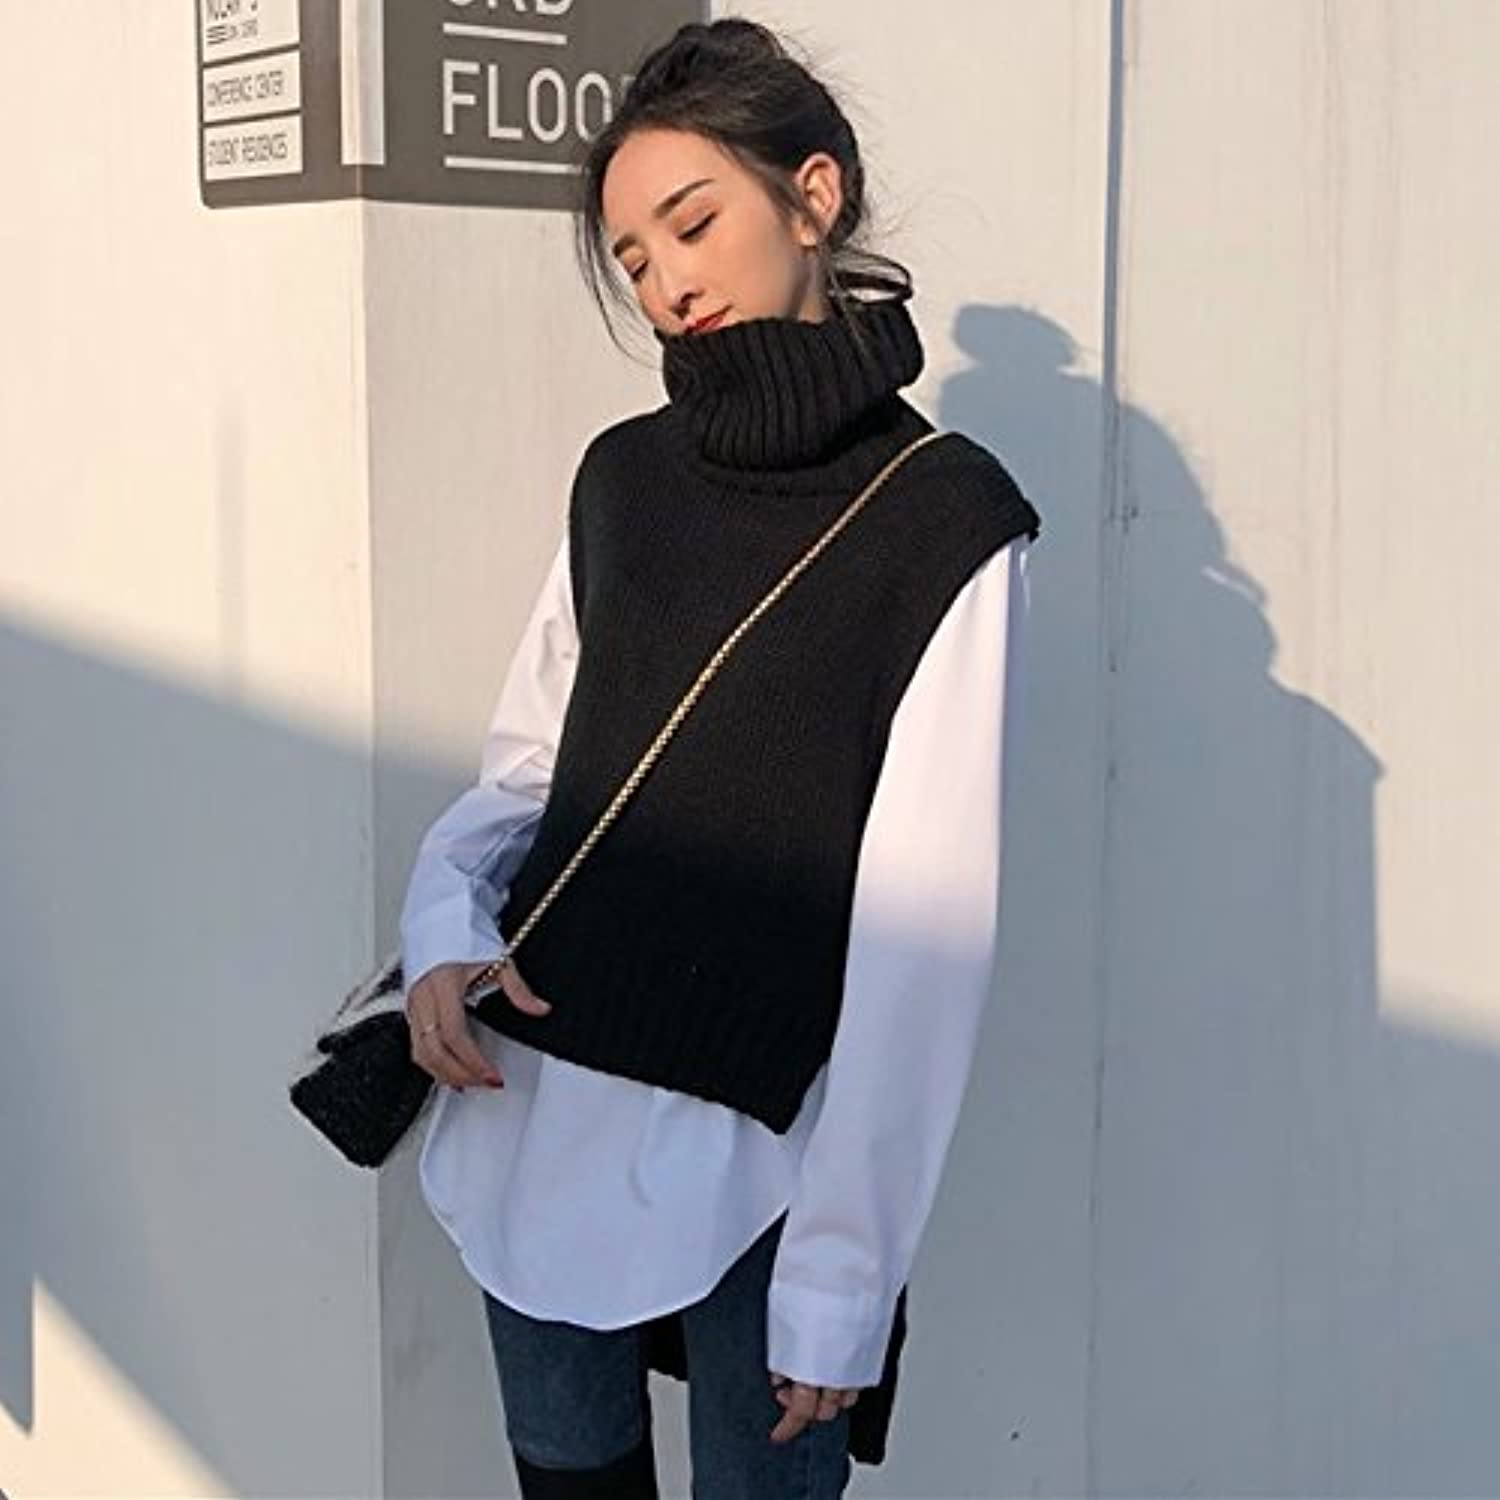 GAOLIM Autumn and Winter LooseNecked HighHeddress Shirt Splicing Short Before and After The Holiday Two Sweaters Shirt Women